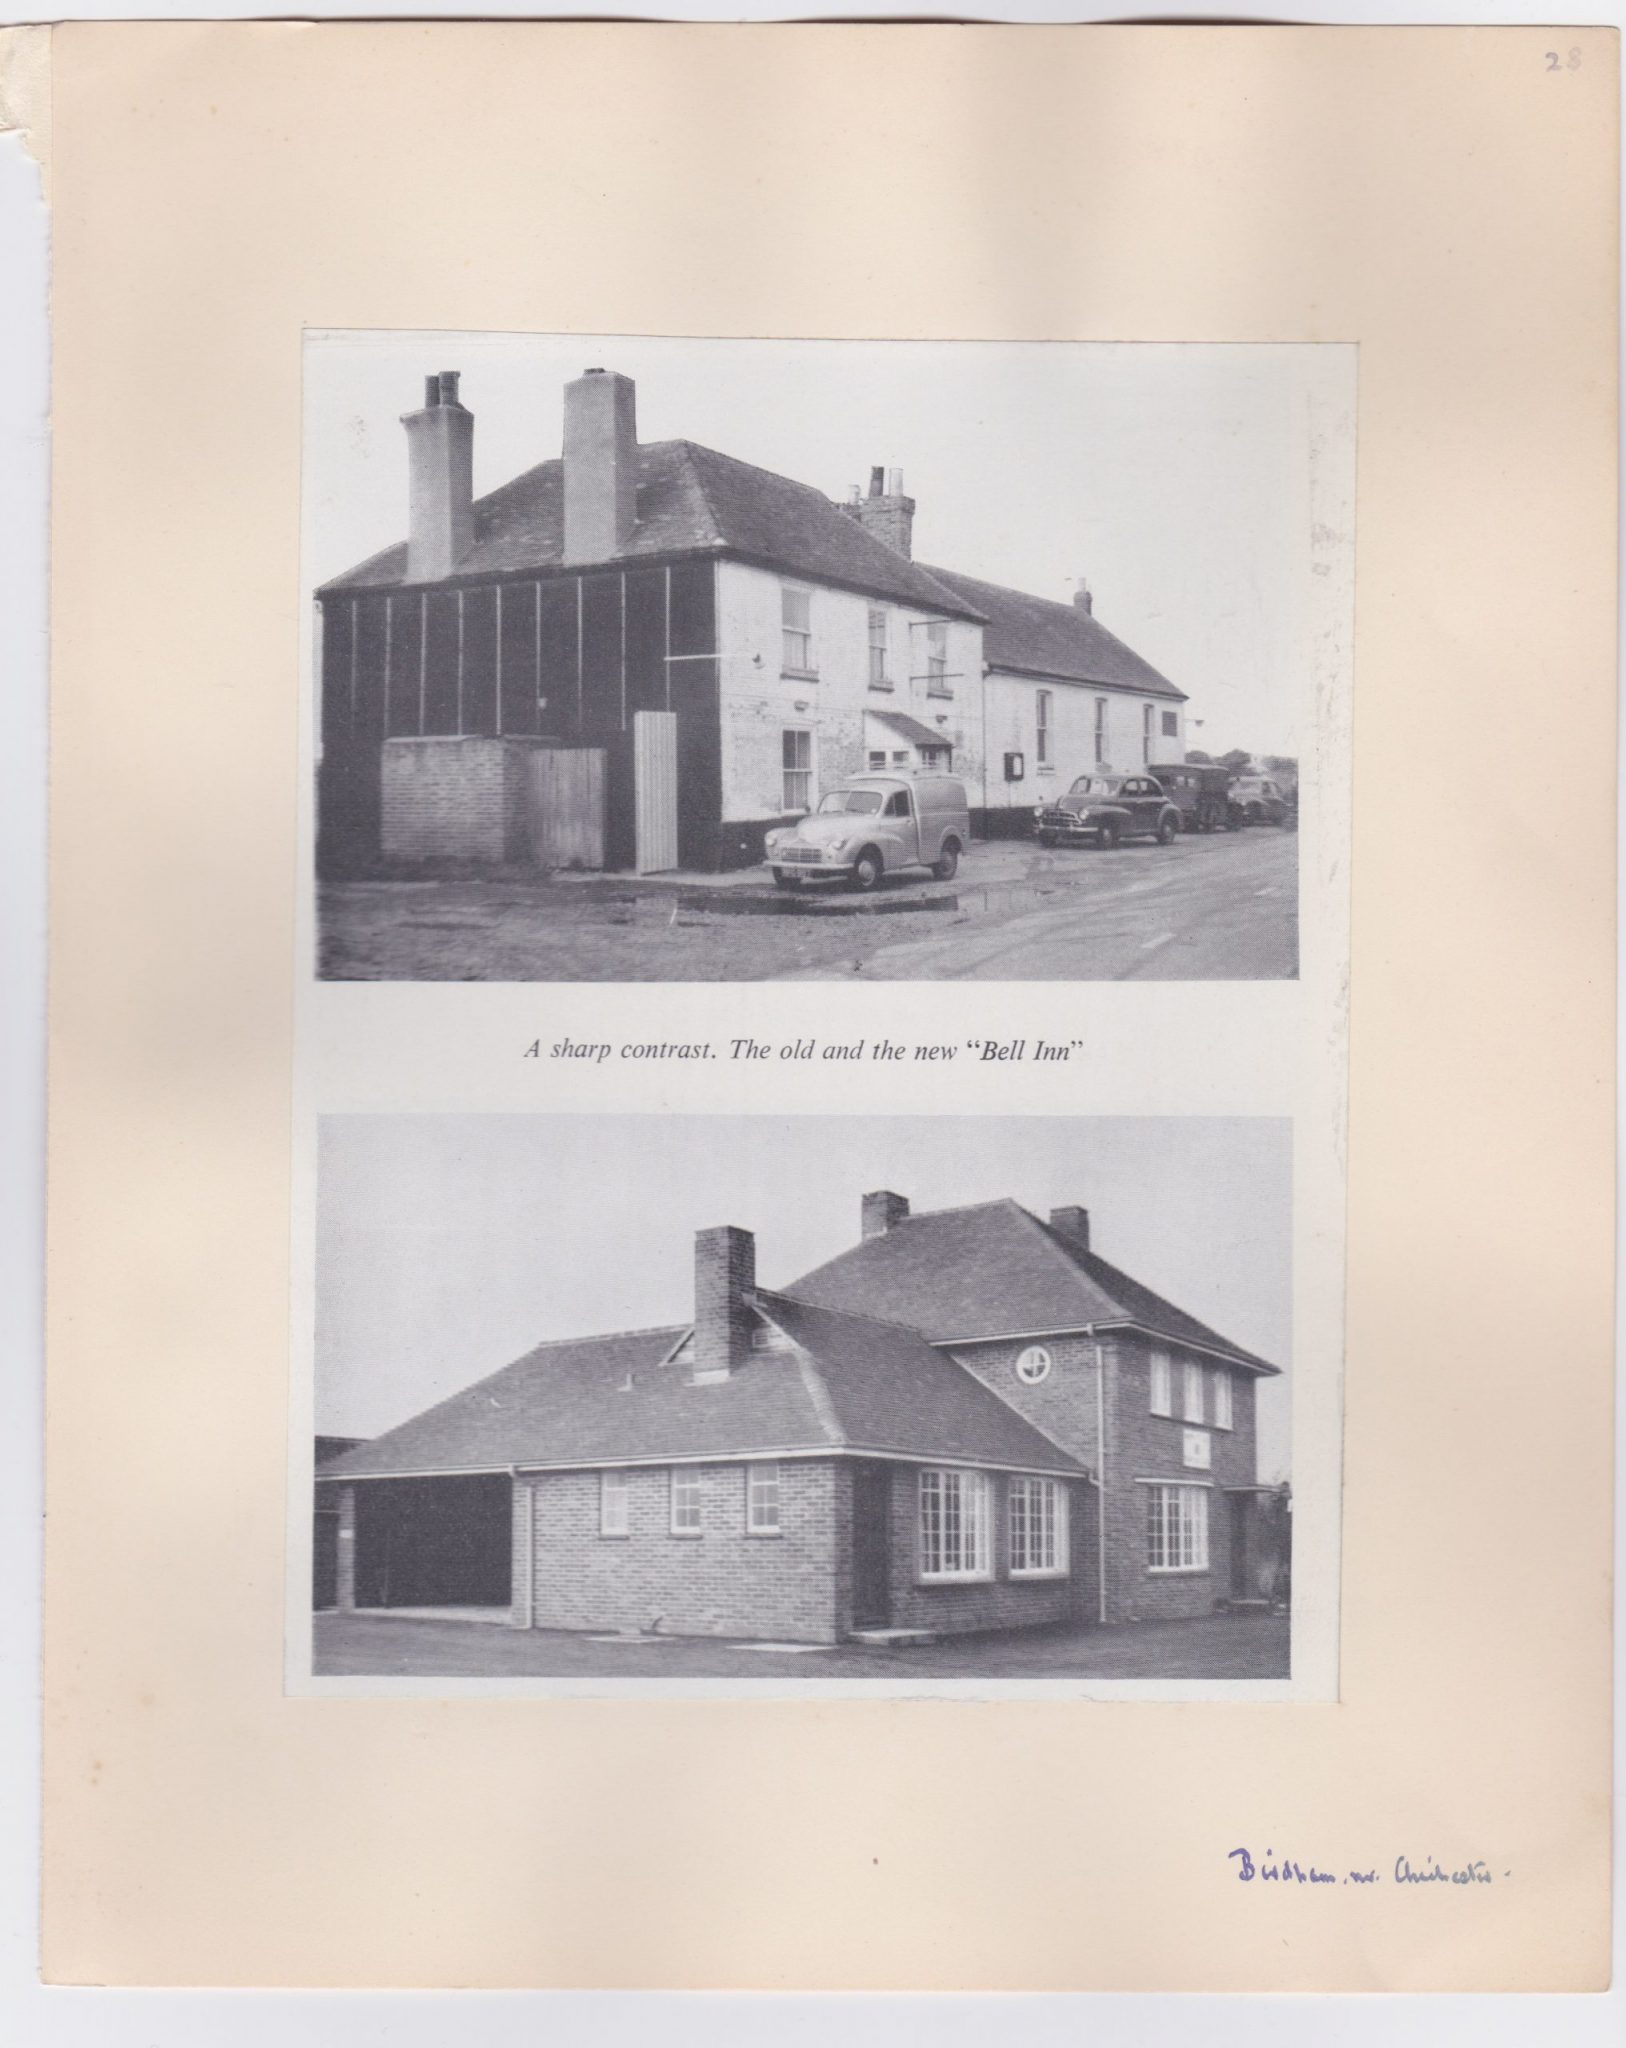 Two circa 1950s photographs of The Bell Inn before and after redevelopment